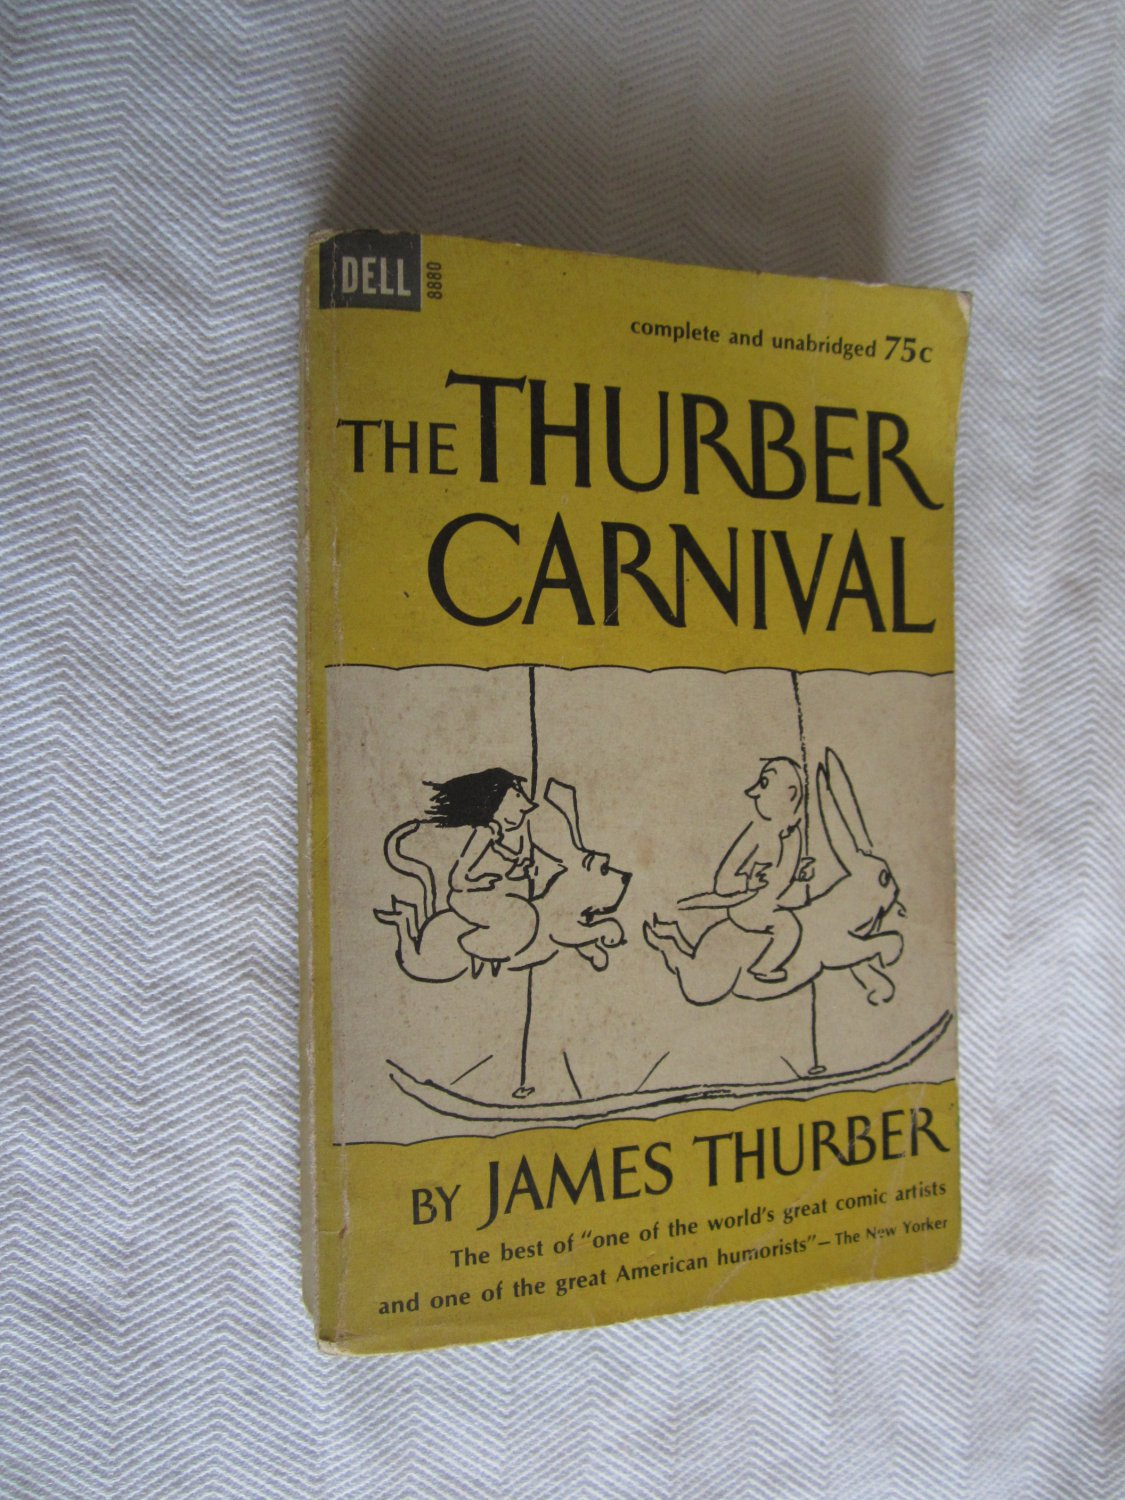 Healthy Eating Habits Essay The Thurber Carnival By James Thurber  Wc Satire Humor Short  Stories English Model Essays also Good Proposal Essay Topics The Thurber Carnival By James Thurber  Wc Satire Humor  English Short Essays